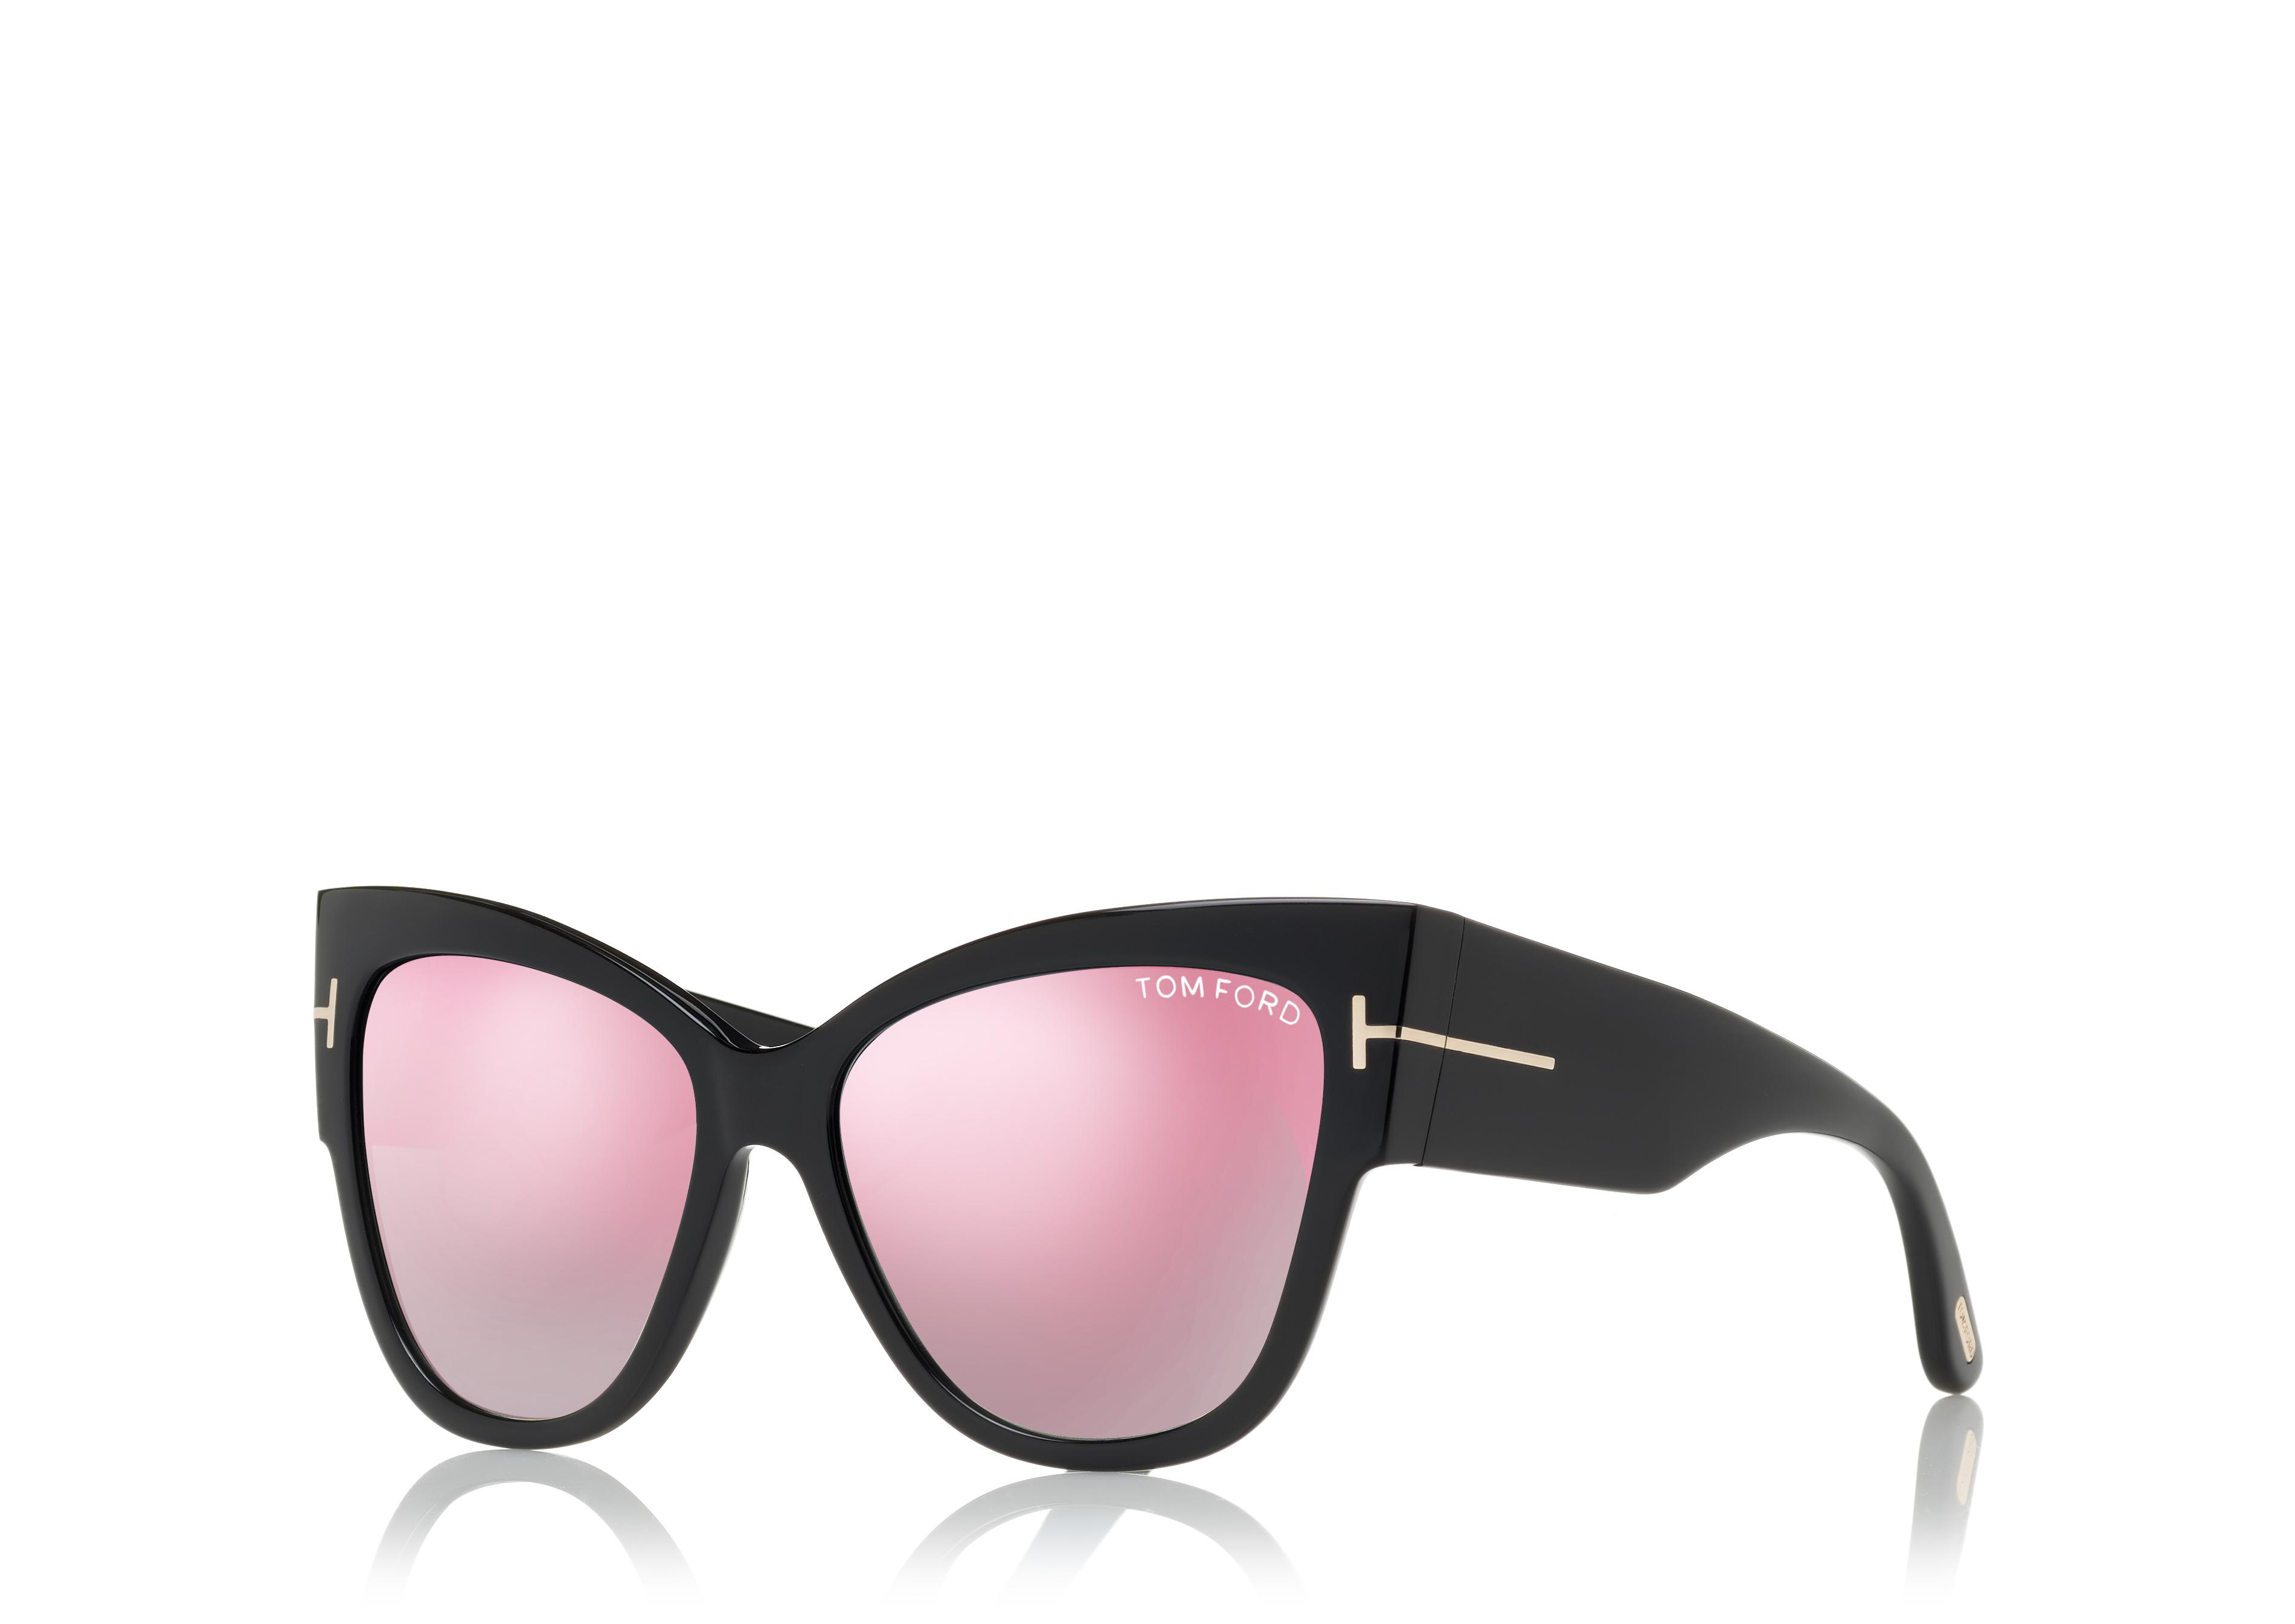 ANOUSHKA SUNGLASSES WITH FLASH LENSES C thumbnail